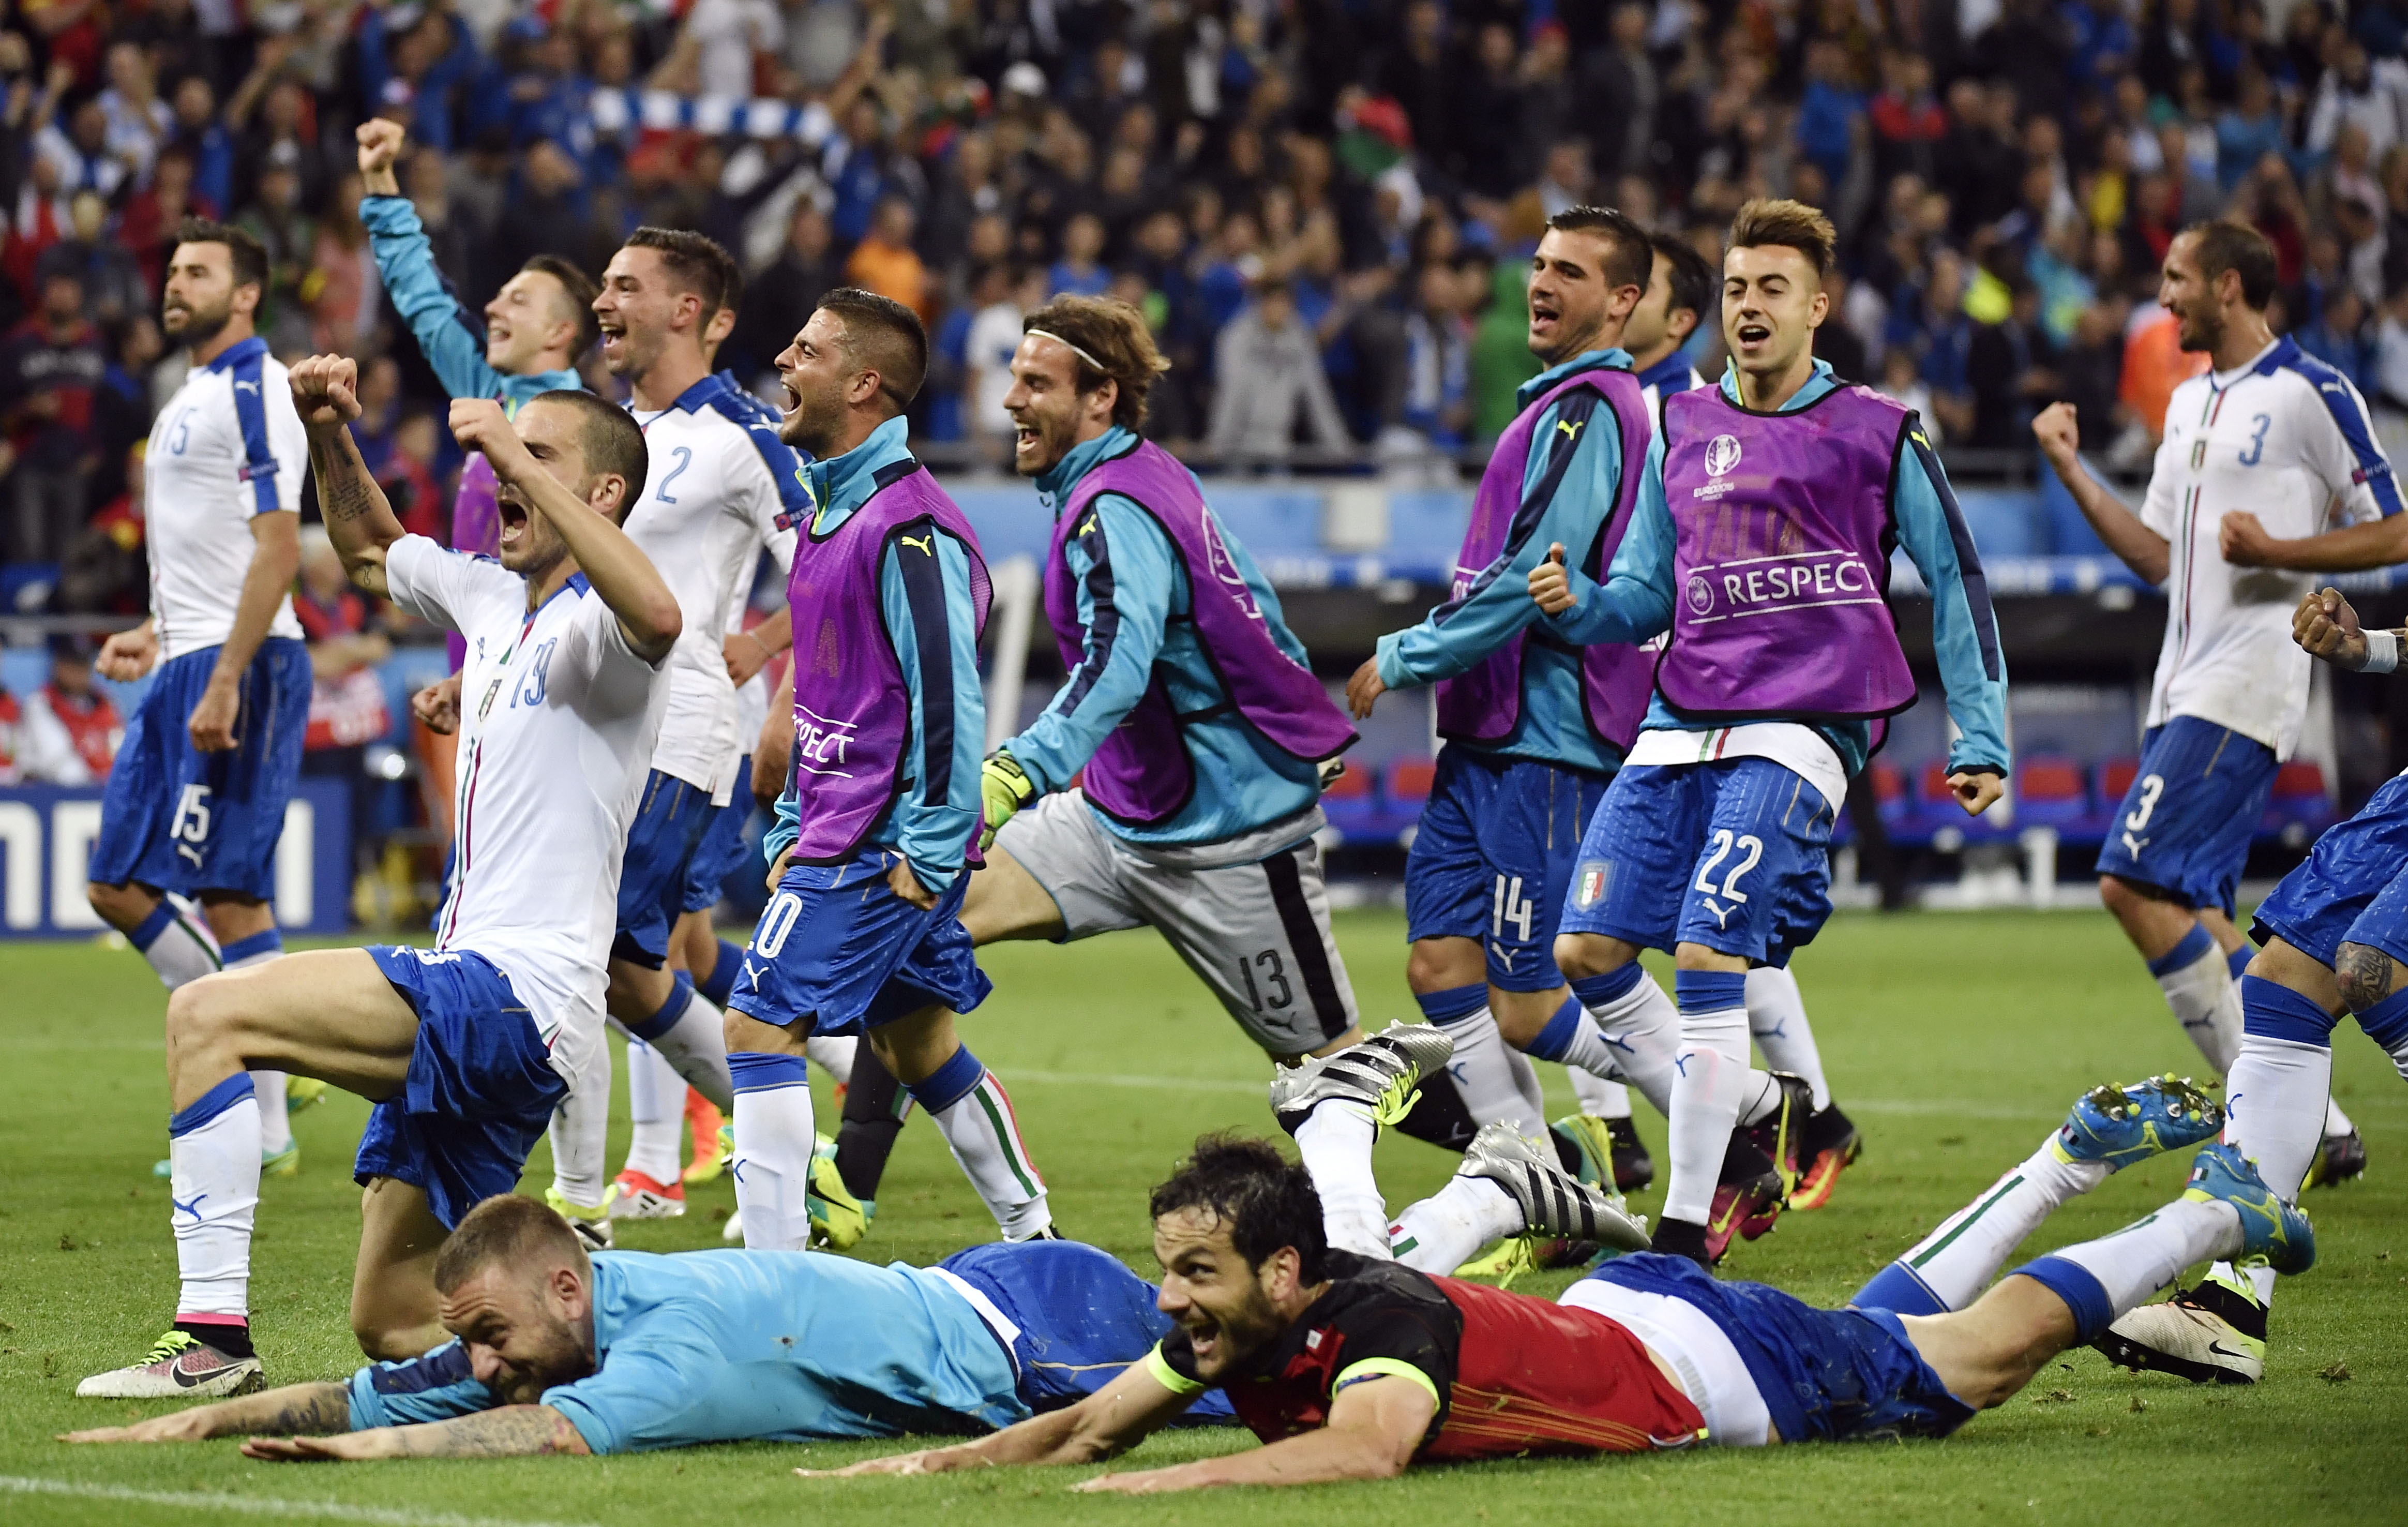 The Italy squad celebrate a 2-0 victory following the Euro 2016 group E football match between Belgium and Italy at the Parc Olympique Lyonnais stadium in Lyon on June 13, 2016. / AFP / jeff pachoud        (Photo credit should read )